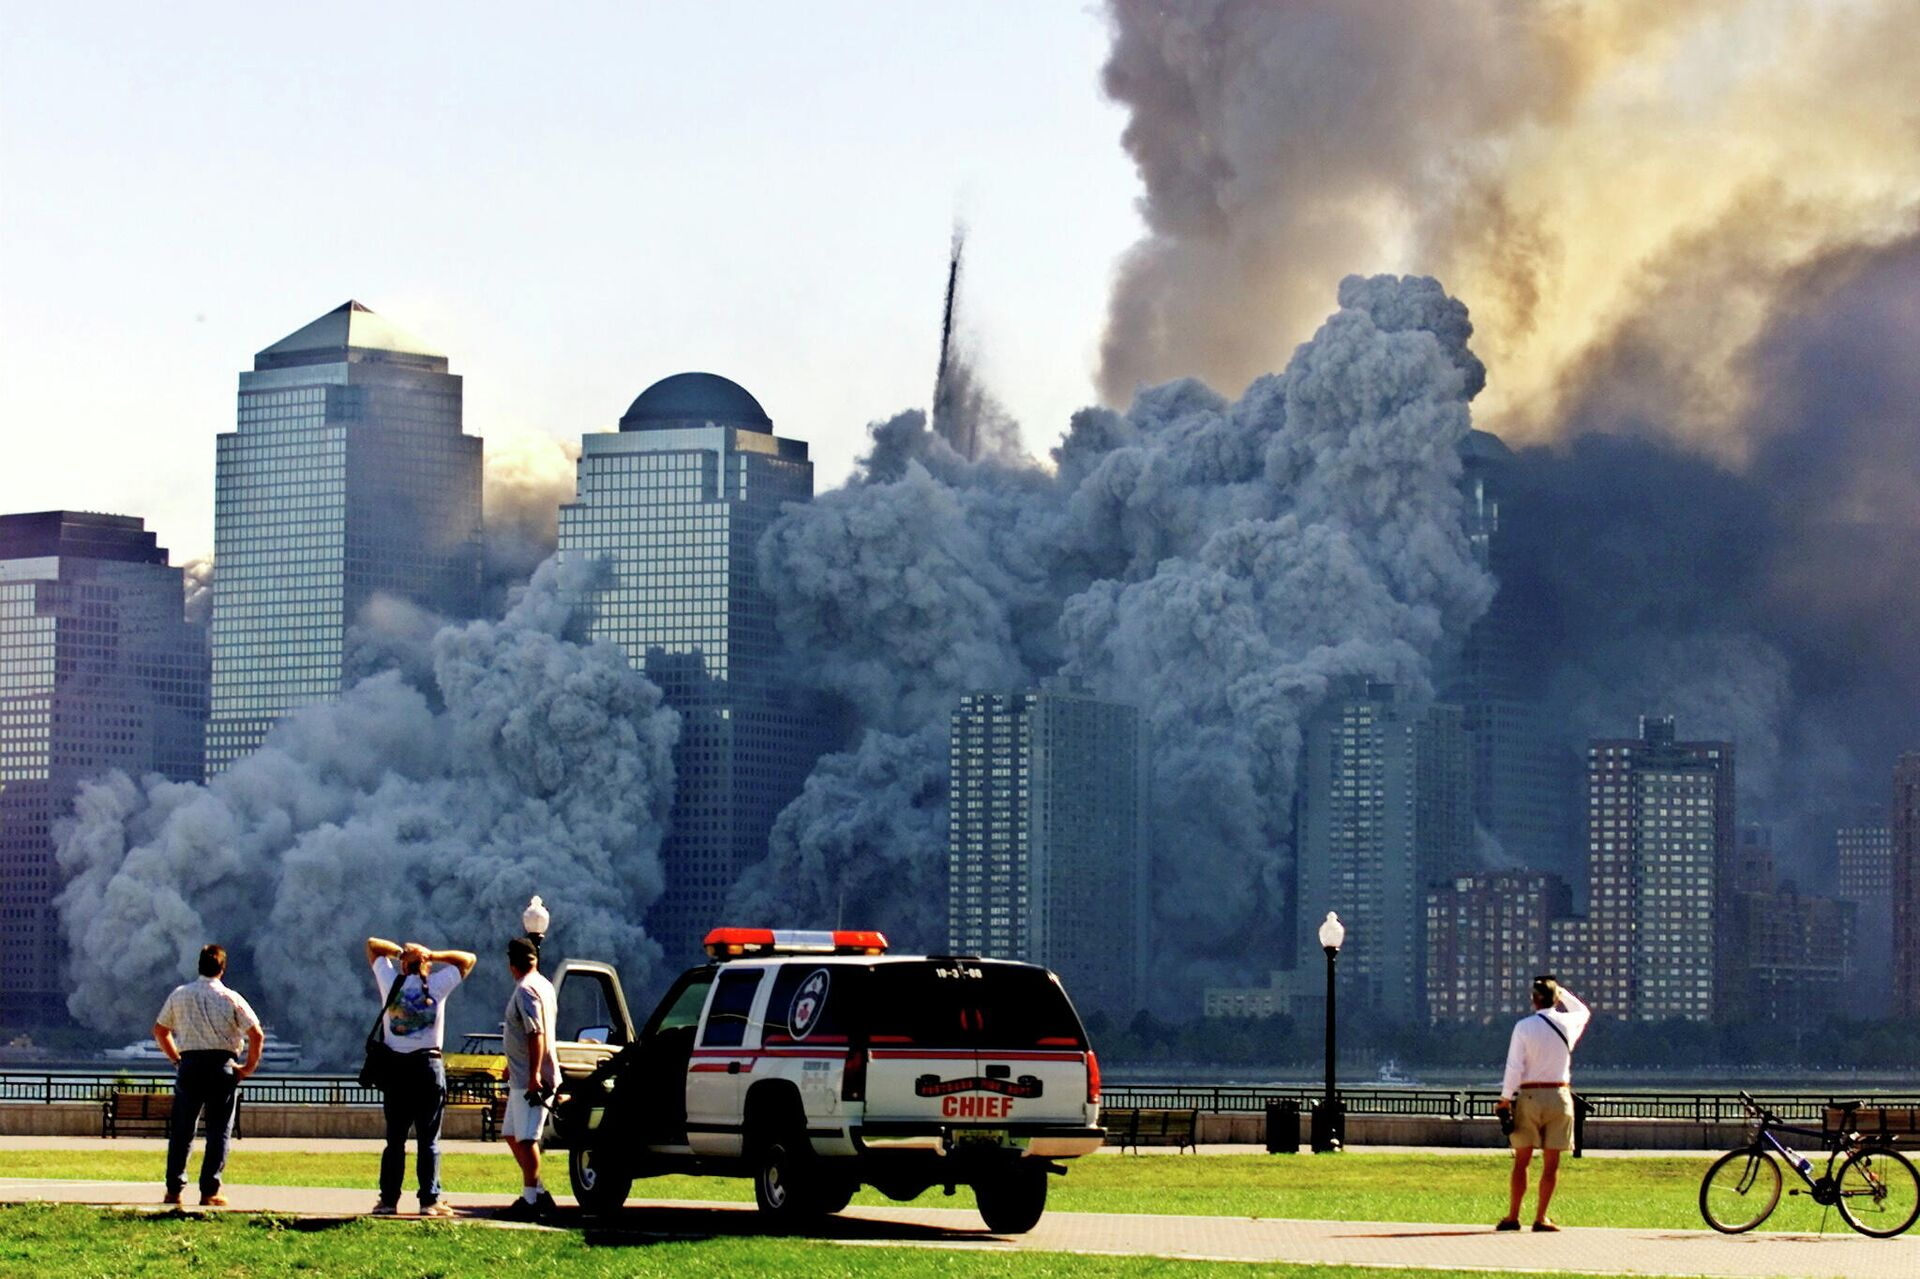 FILE PHOTO: The remaining tower of New York's World Trade Center, Tower 2, dissolves in a cloud of dust and debris about half an hour after the first twin tower collapsed, as seen from Jersey City, New Jersey, U.S. September 11, 2001.  - Sputnik International, 1920, 13.09.2021